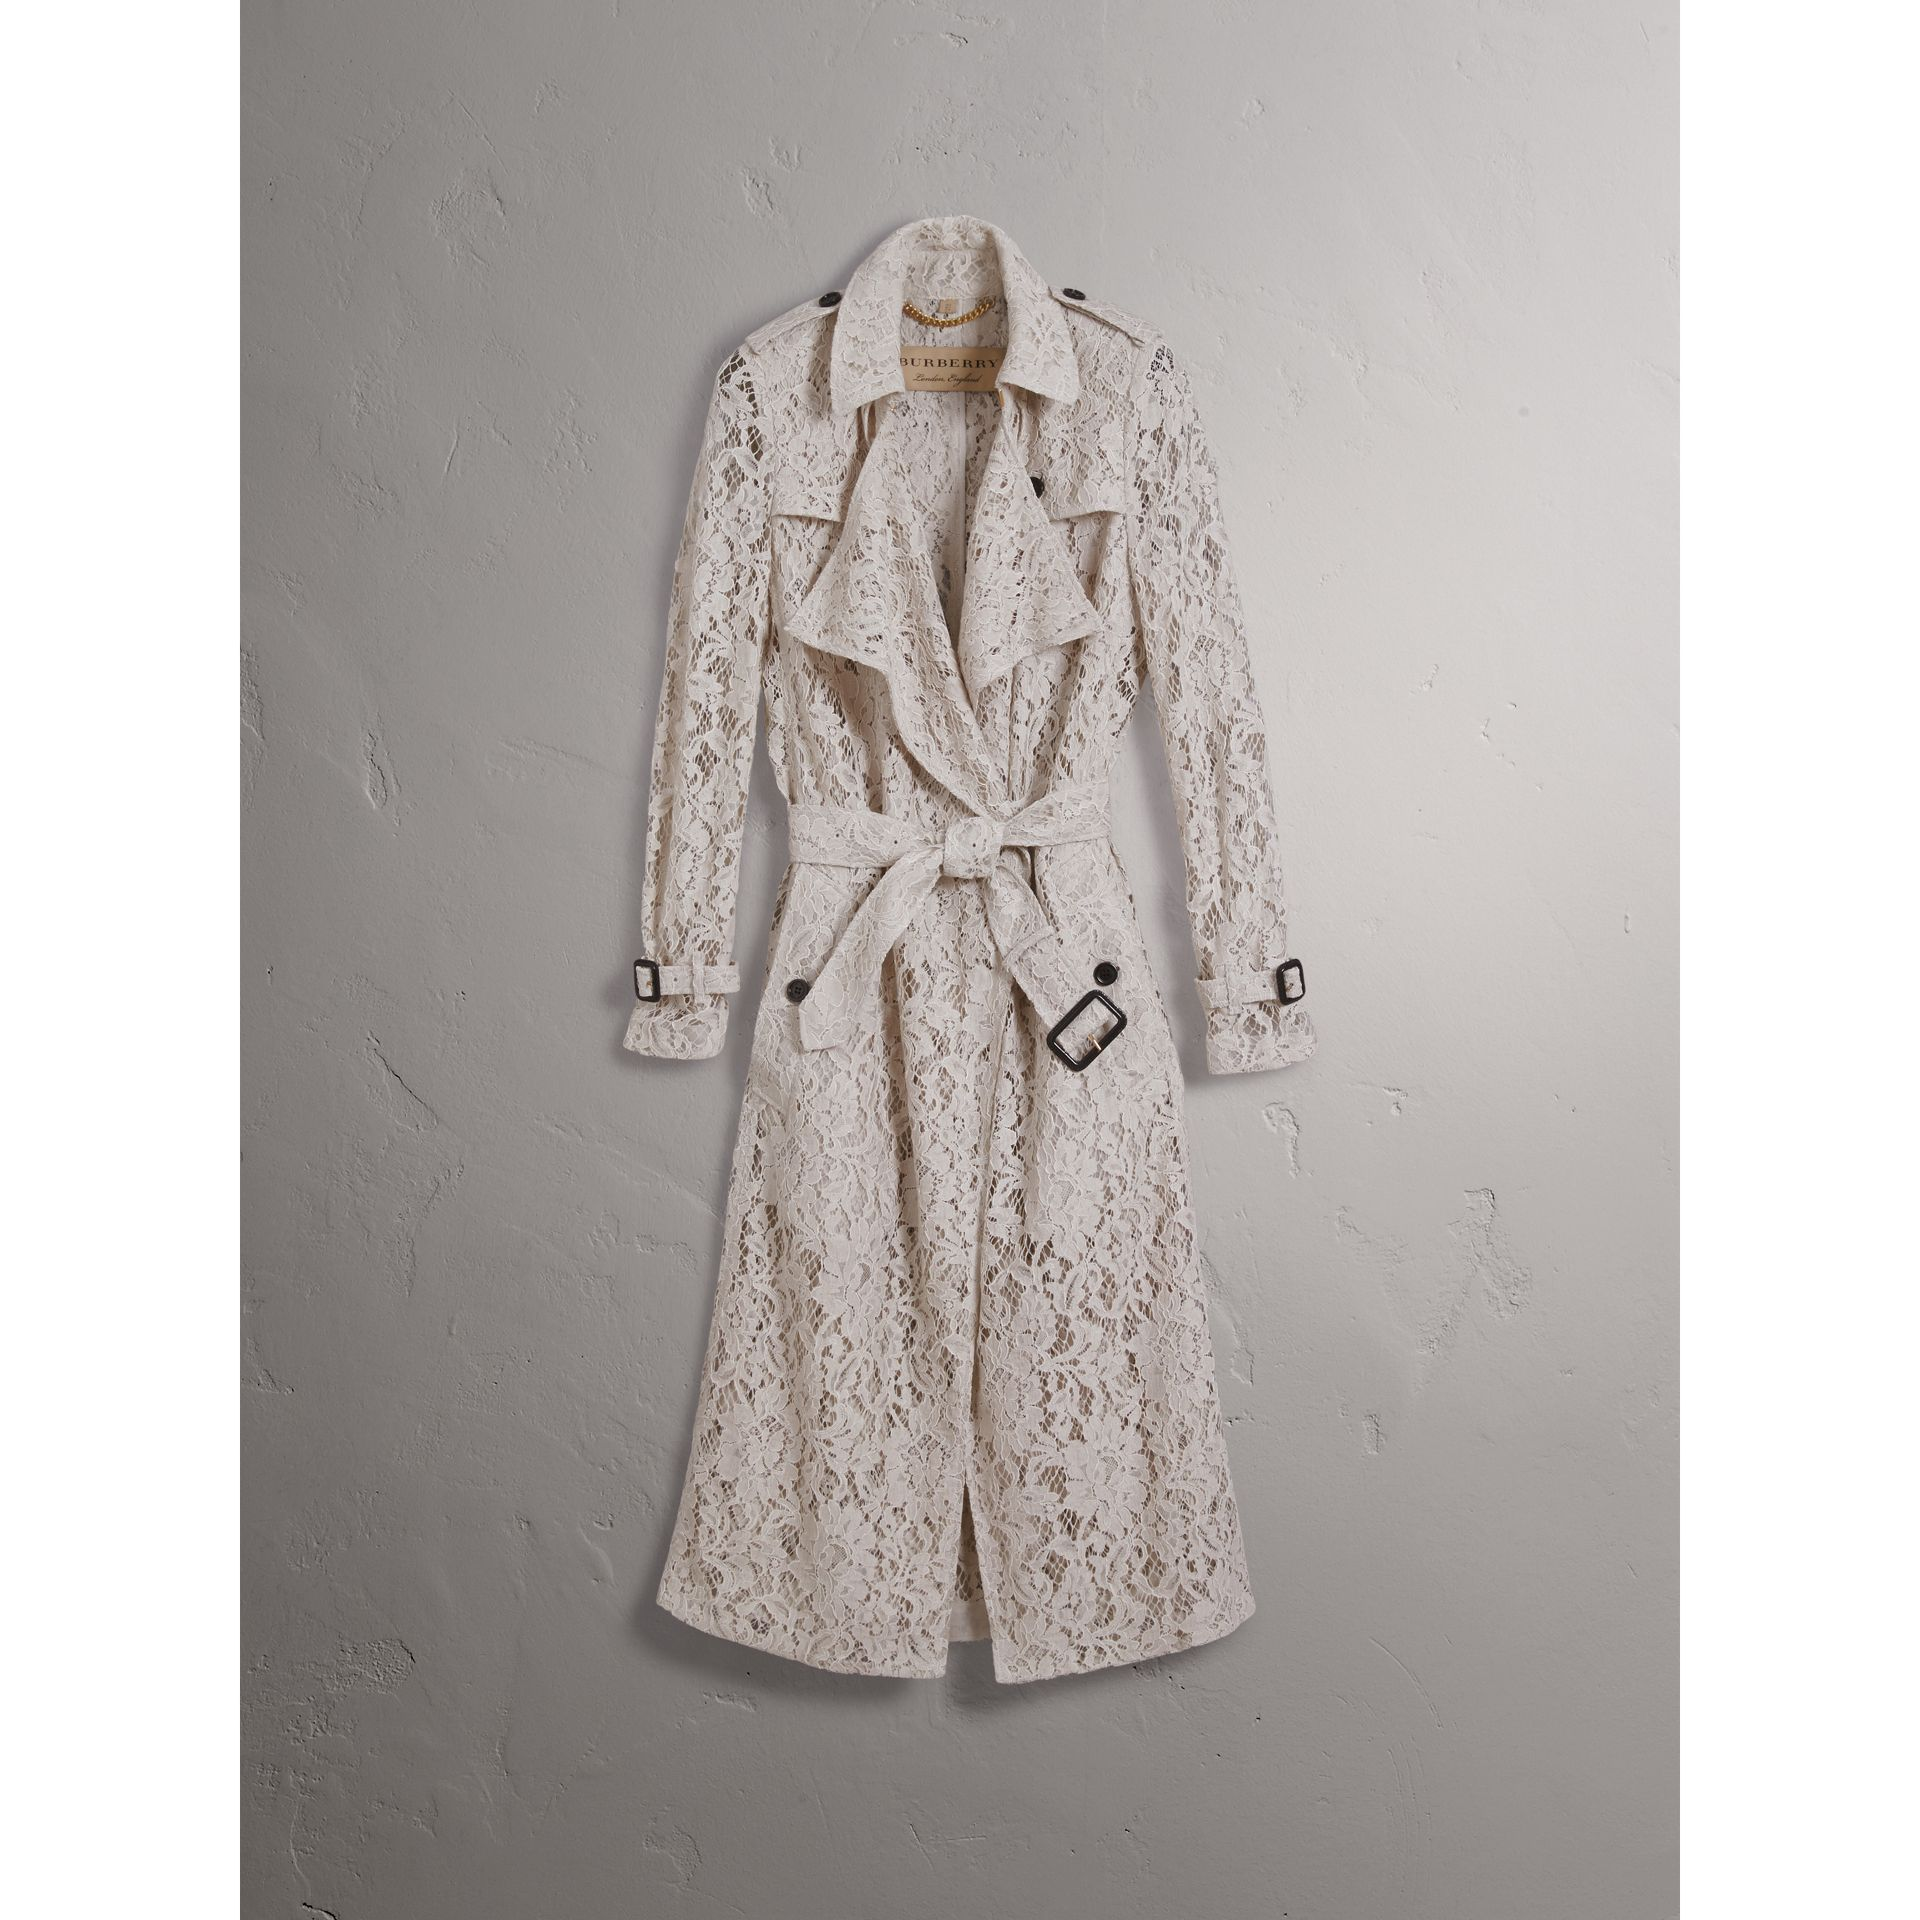 Trench-coat en macramé de dentelle (Gris Clair) - Femme | Burberry - photo de la galerie 4